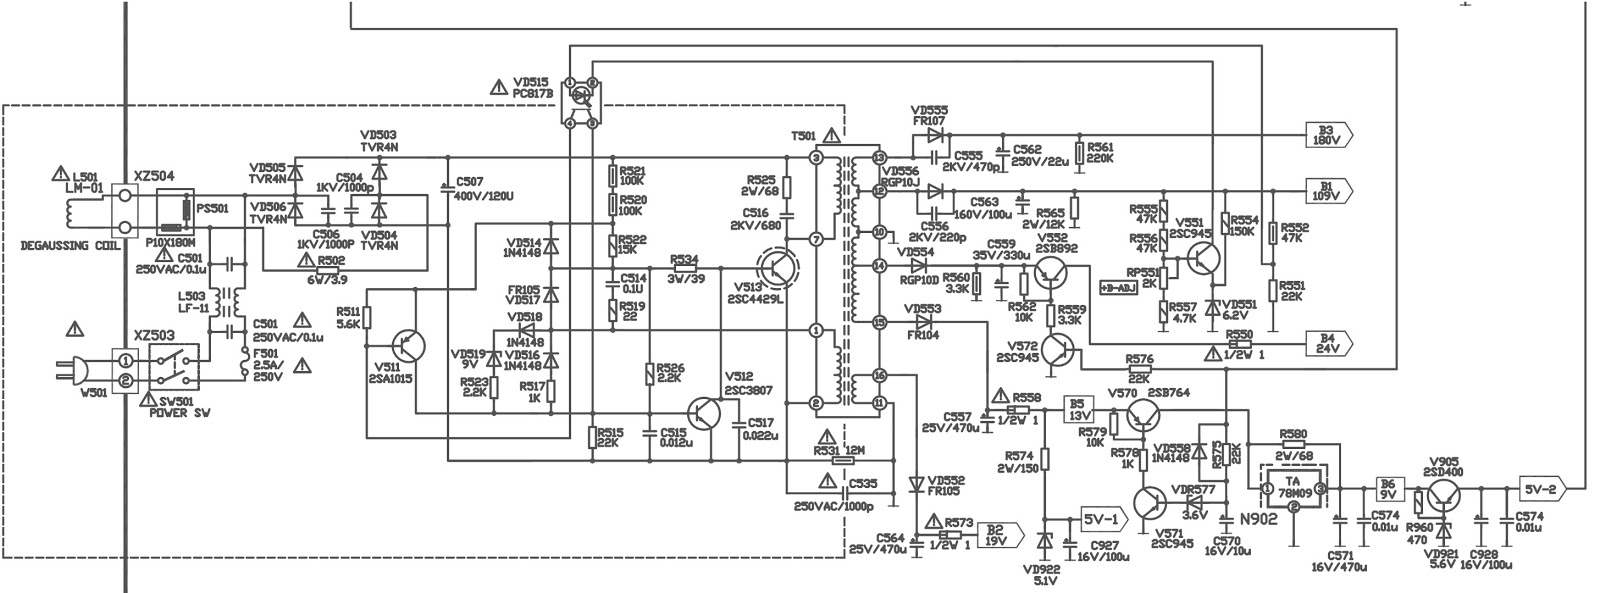 hight resolution of 32xt 32quot lcd tv main power regulator smps schematic diagram lcd tv diagram how works lcd